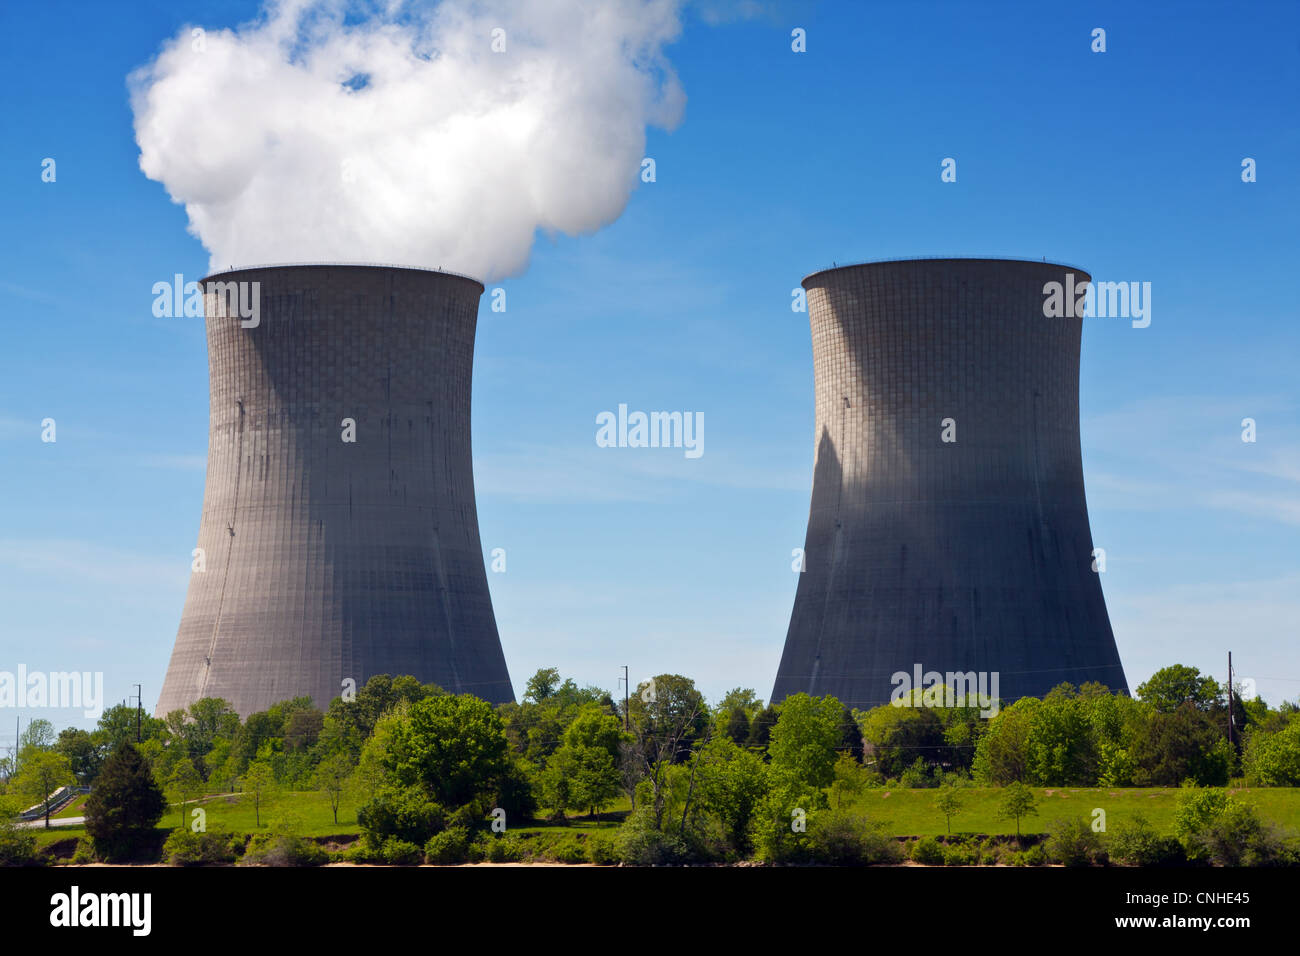 Two cooling towers at a nuclear power generating station. - Stock Image